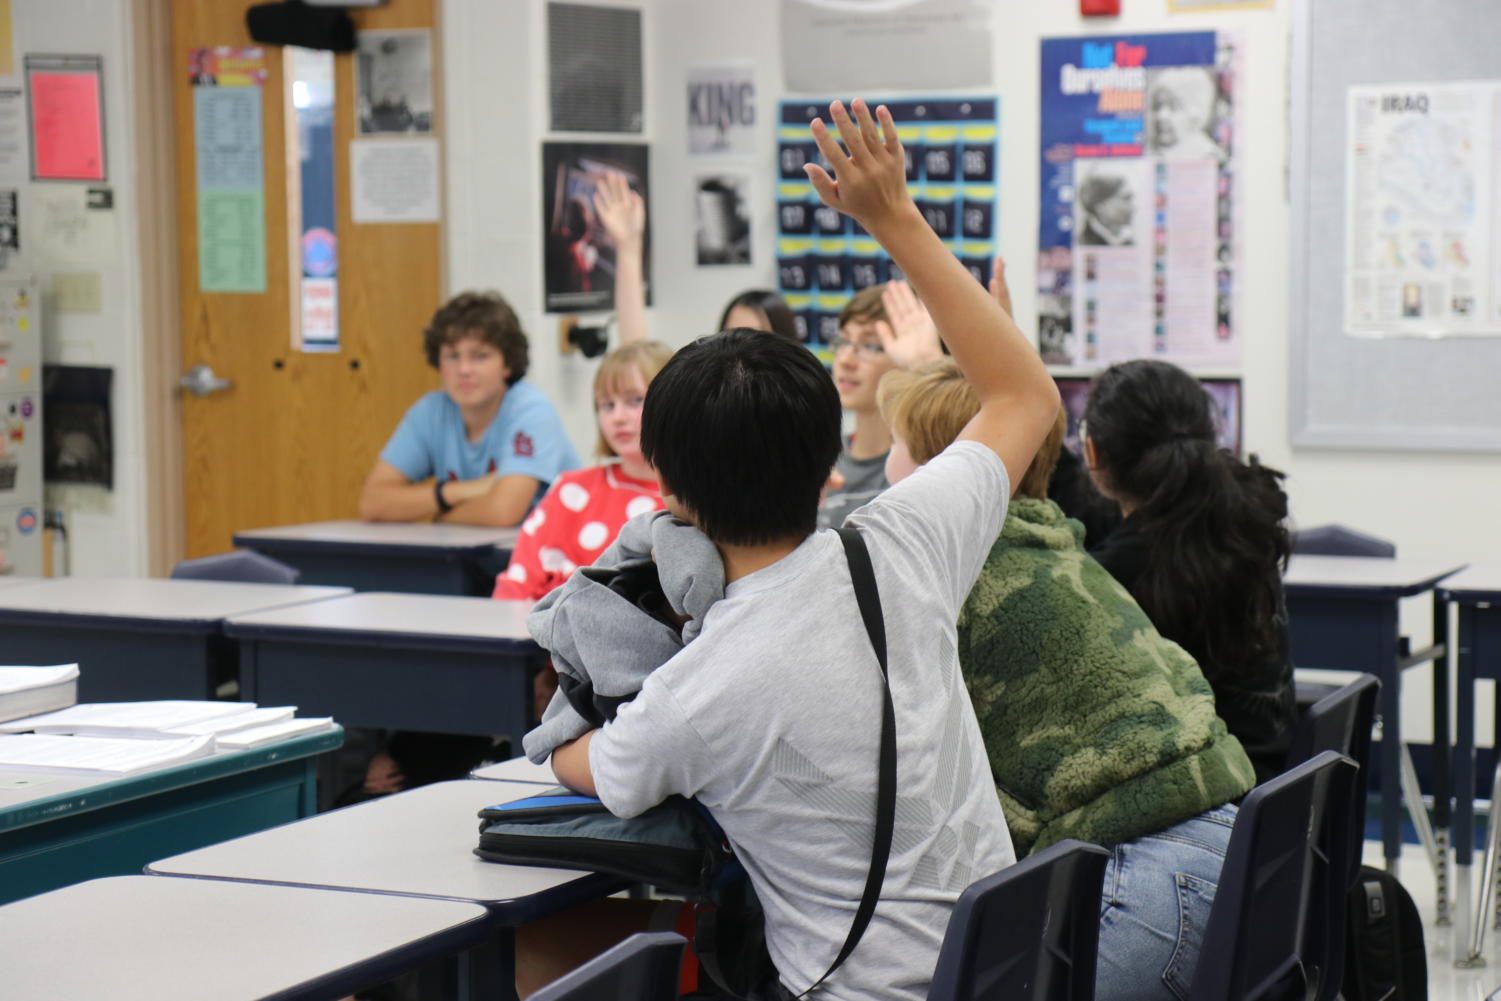 Students raise their hands to vote for the music they will listen to during the next session.